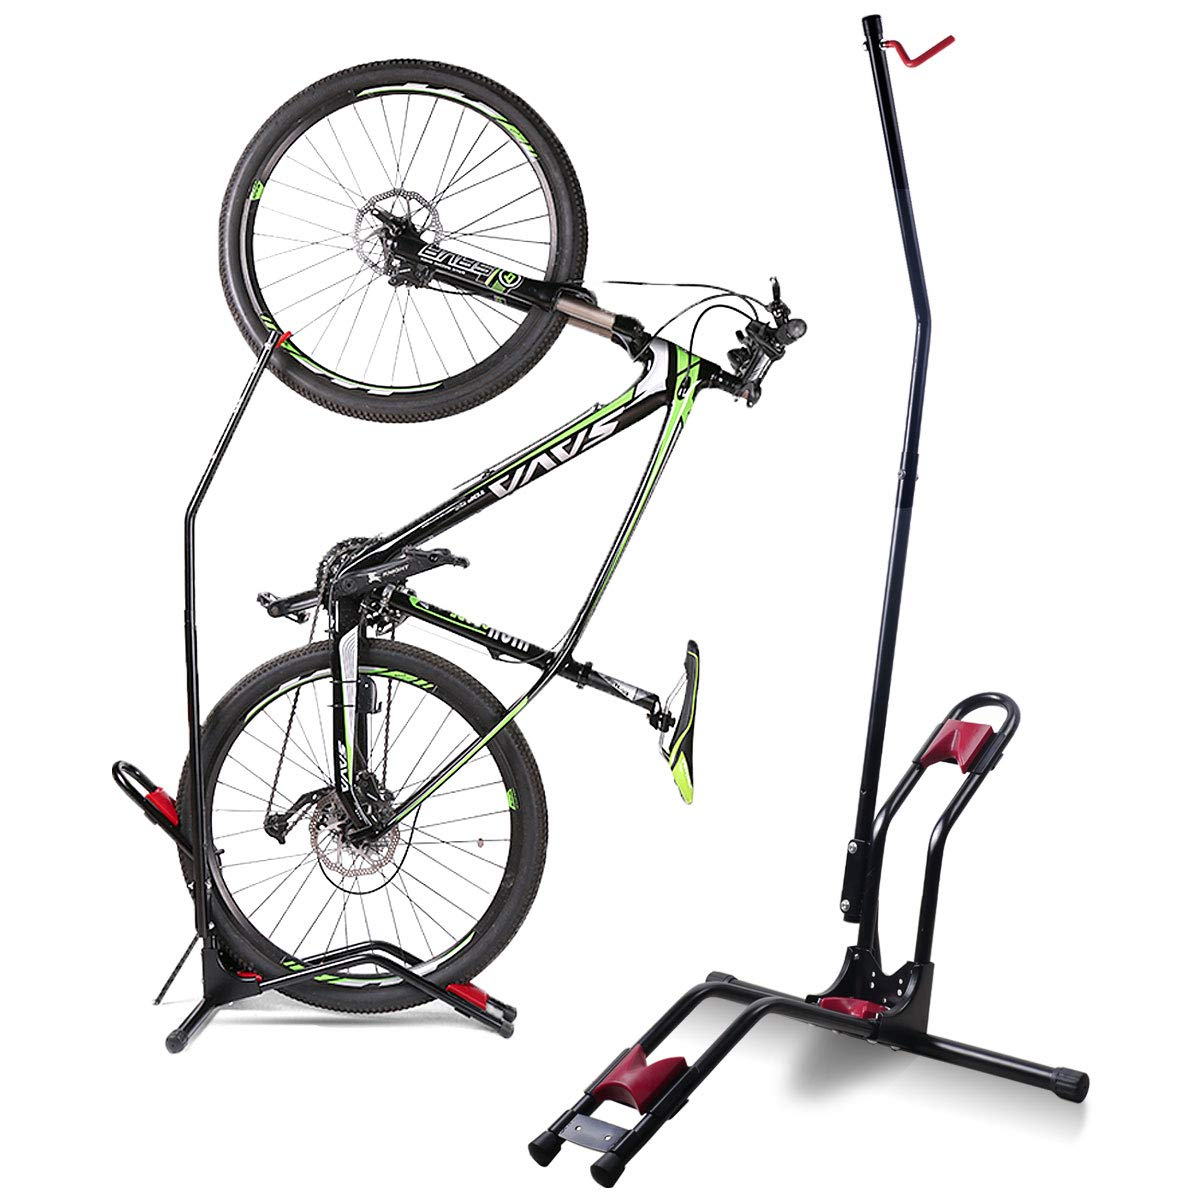 Vertical Bike Stand for Floor, Indoor Bike Mount Rack - Fits Nearly All Bikes & Frees 4 Feet of Floor Space